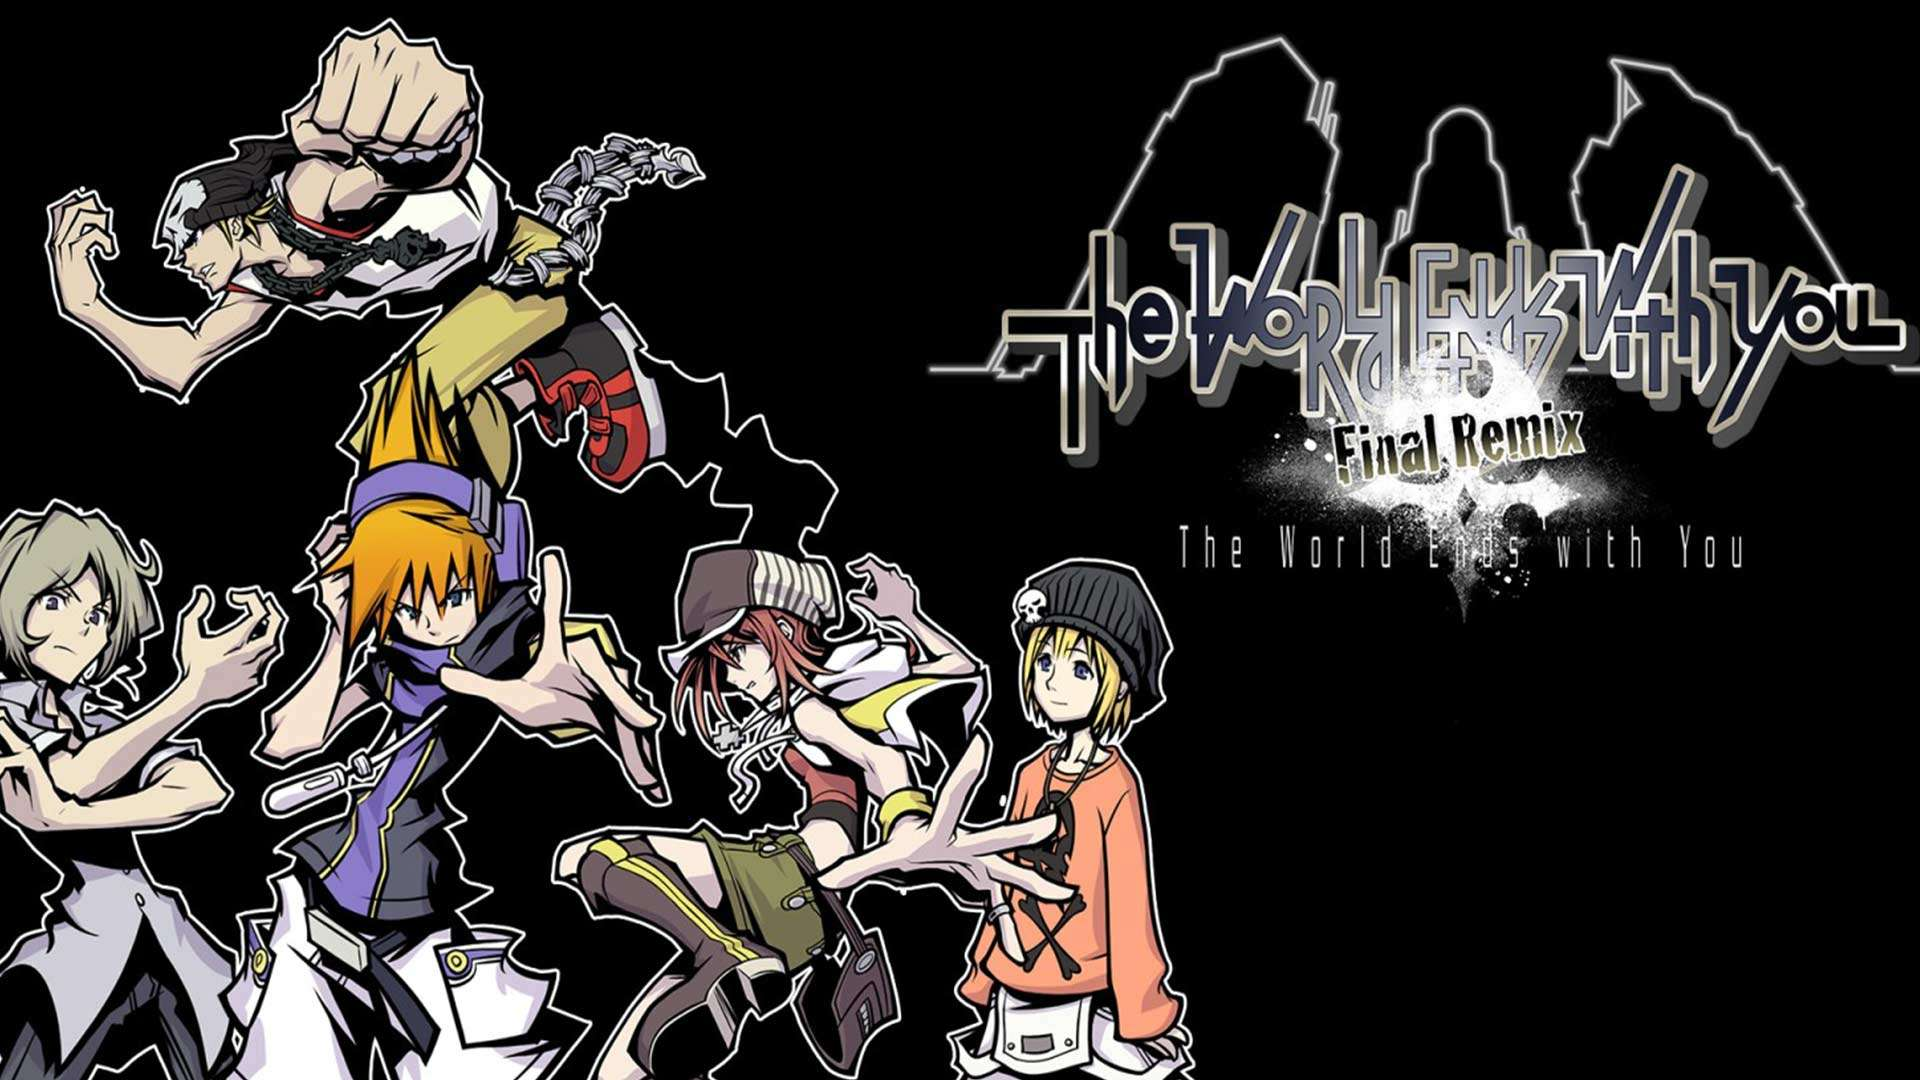 The World Ends With You Final Remix Review Great Game Rough